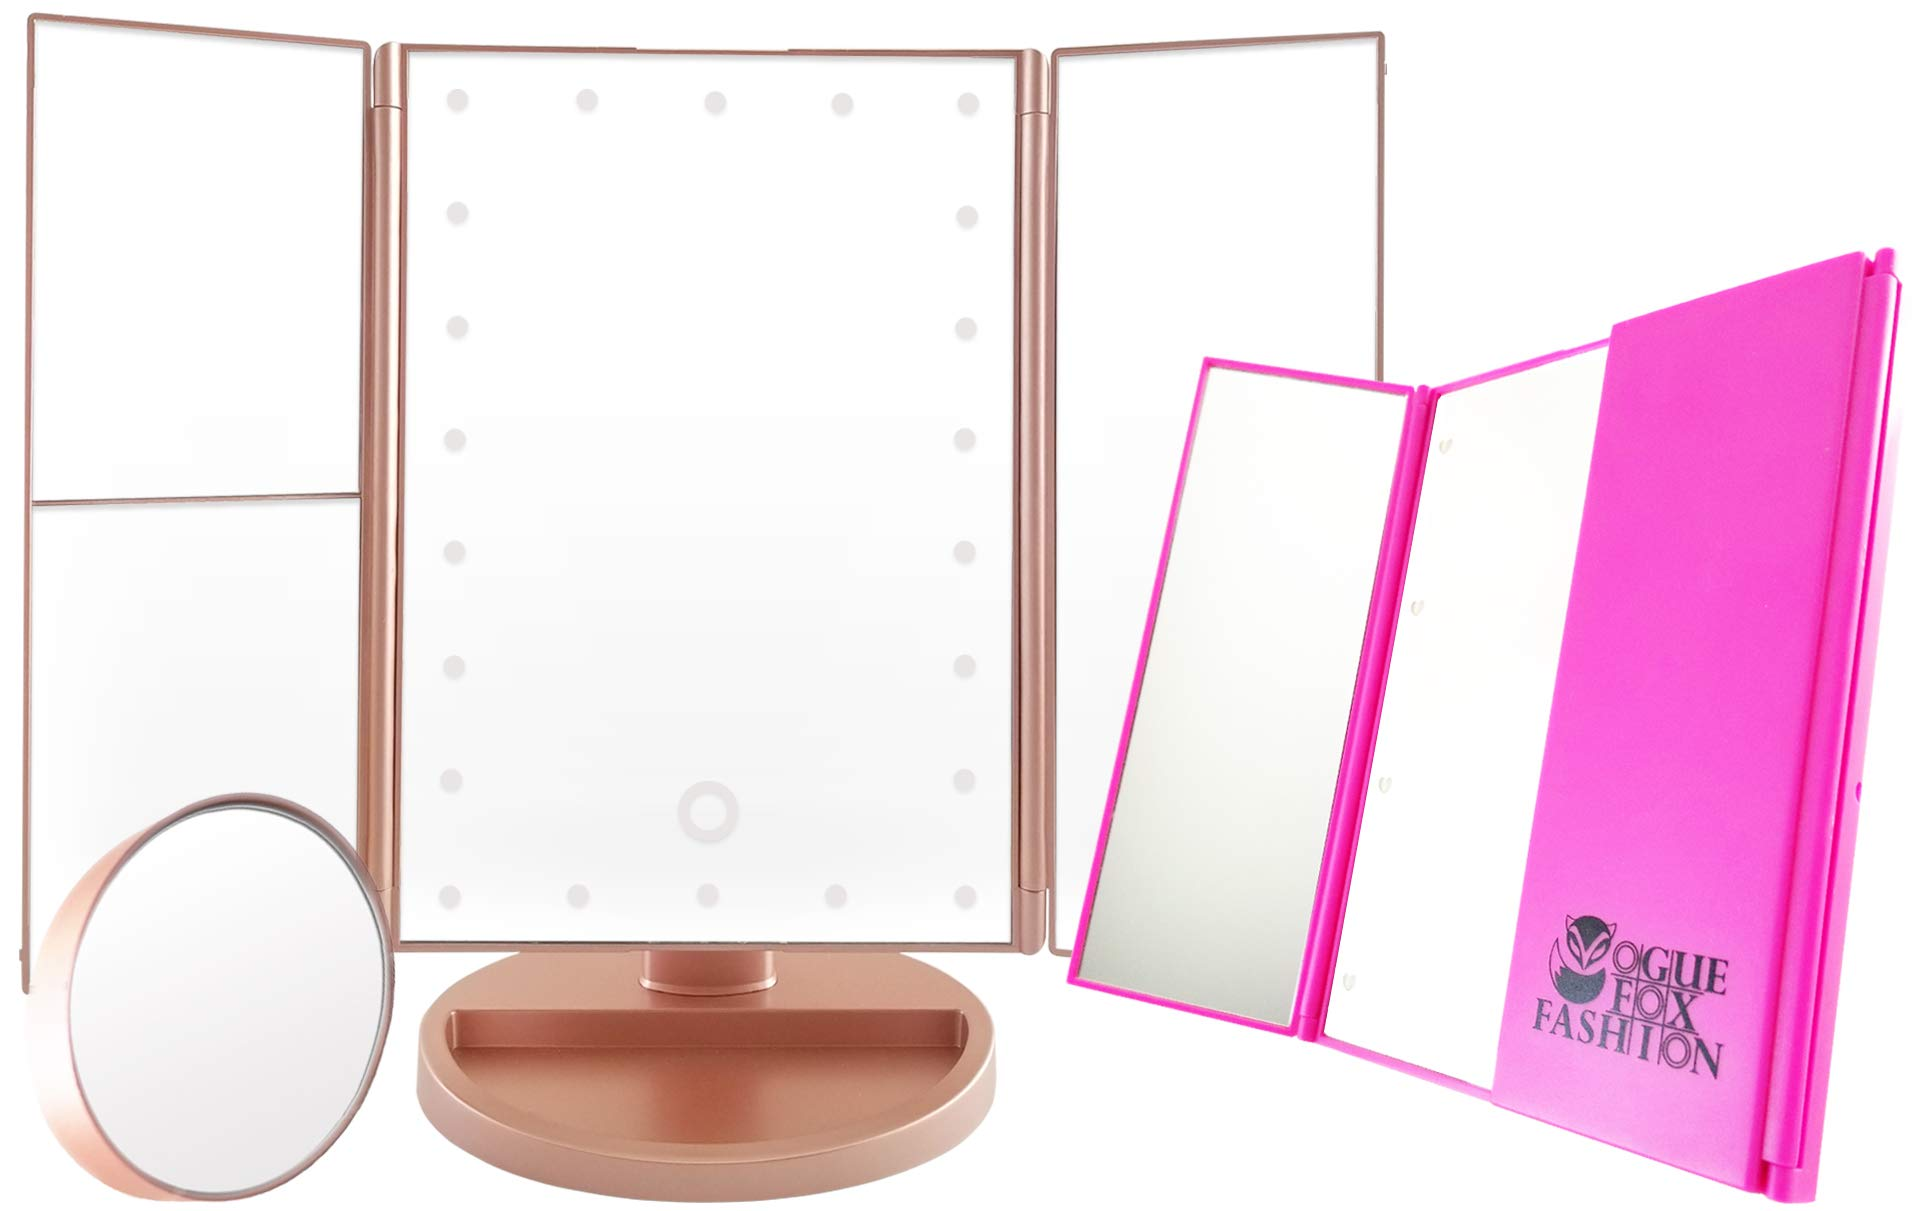 Vogue Fox Fashion Vanity Mirror with Lights (Rose Gold) - Perfect Bathroom Makeup Mirror with 3 types of Magnifying Mirror (3x, 2x, 10x) and Bonus Mini Hand Held Compact LED Lighted Purse Mirror